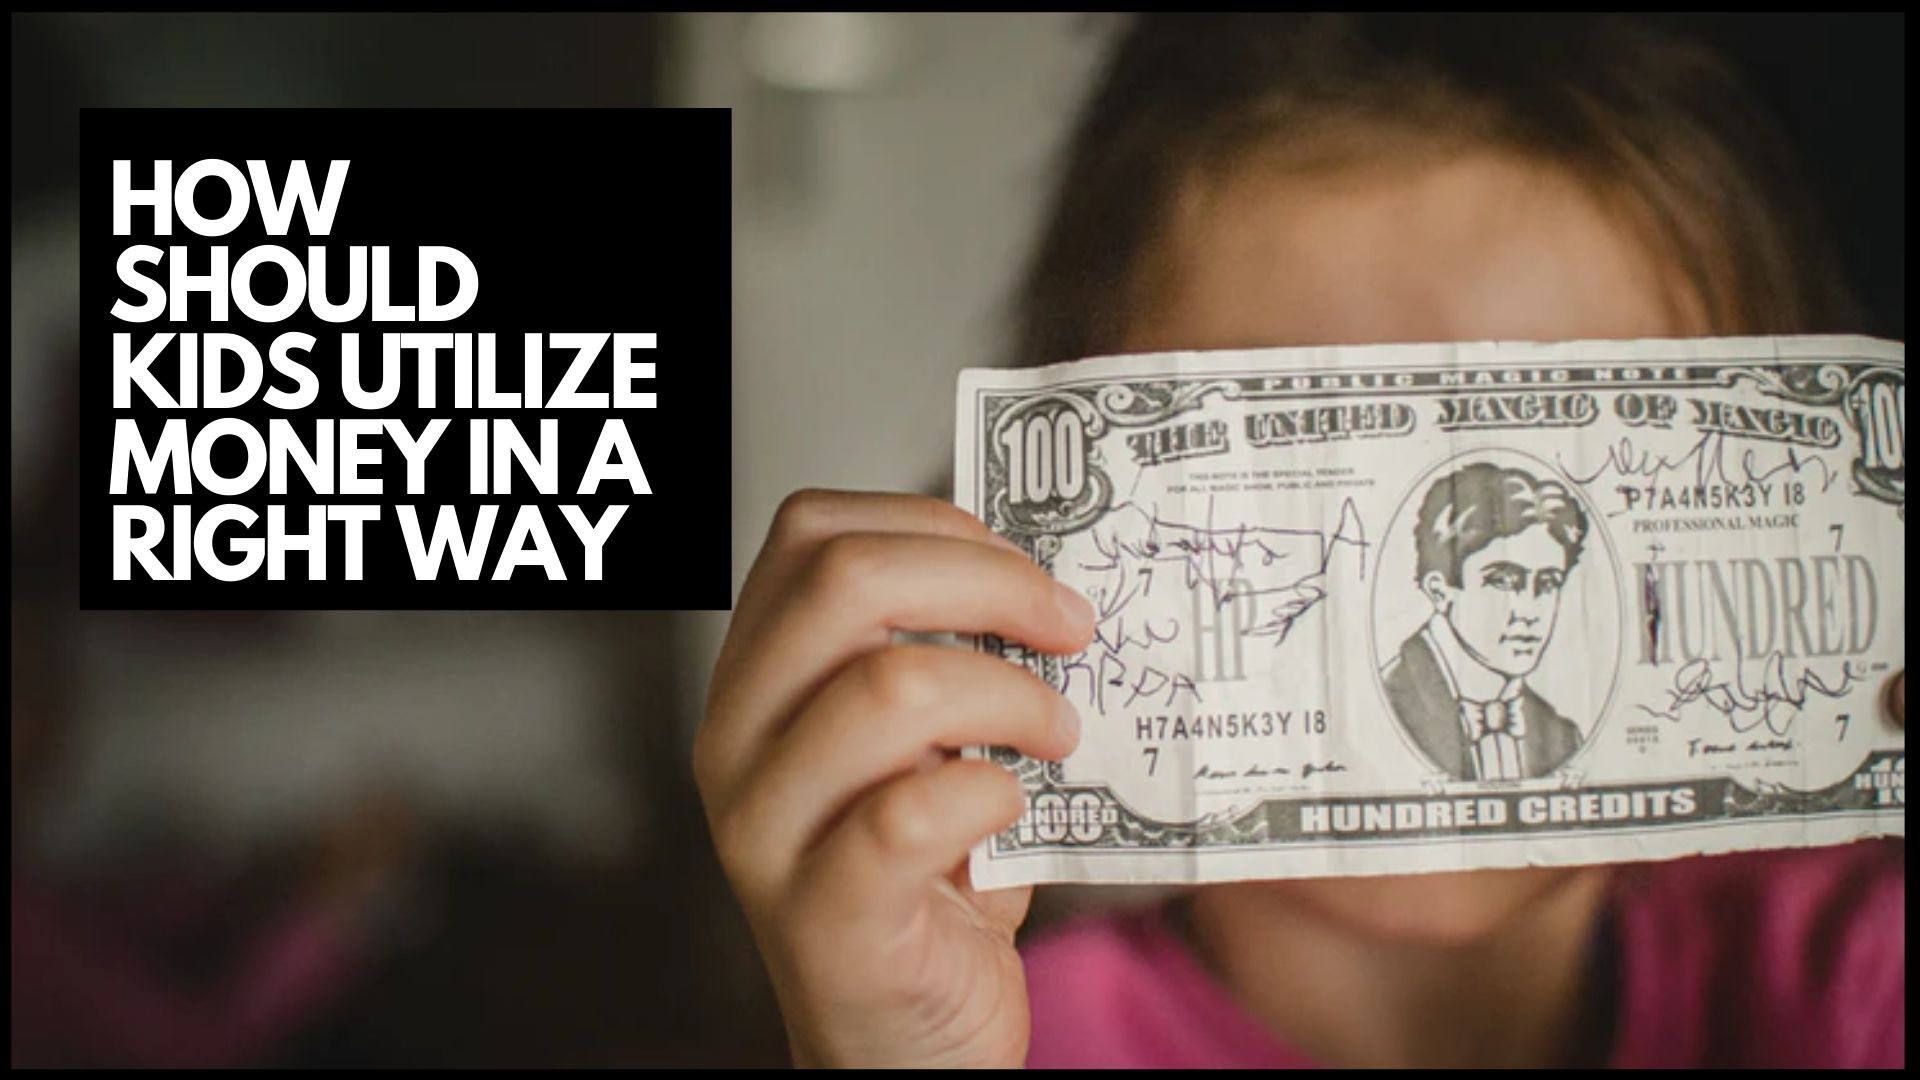 HOW SHOULD KIDS UTILIZE MONEY IN A RIGHT WAY